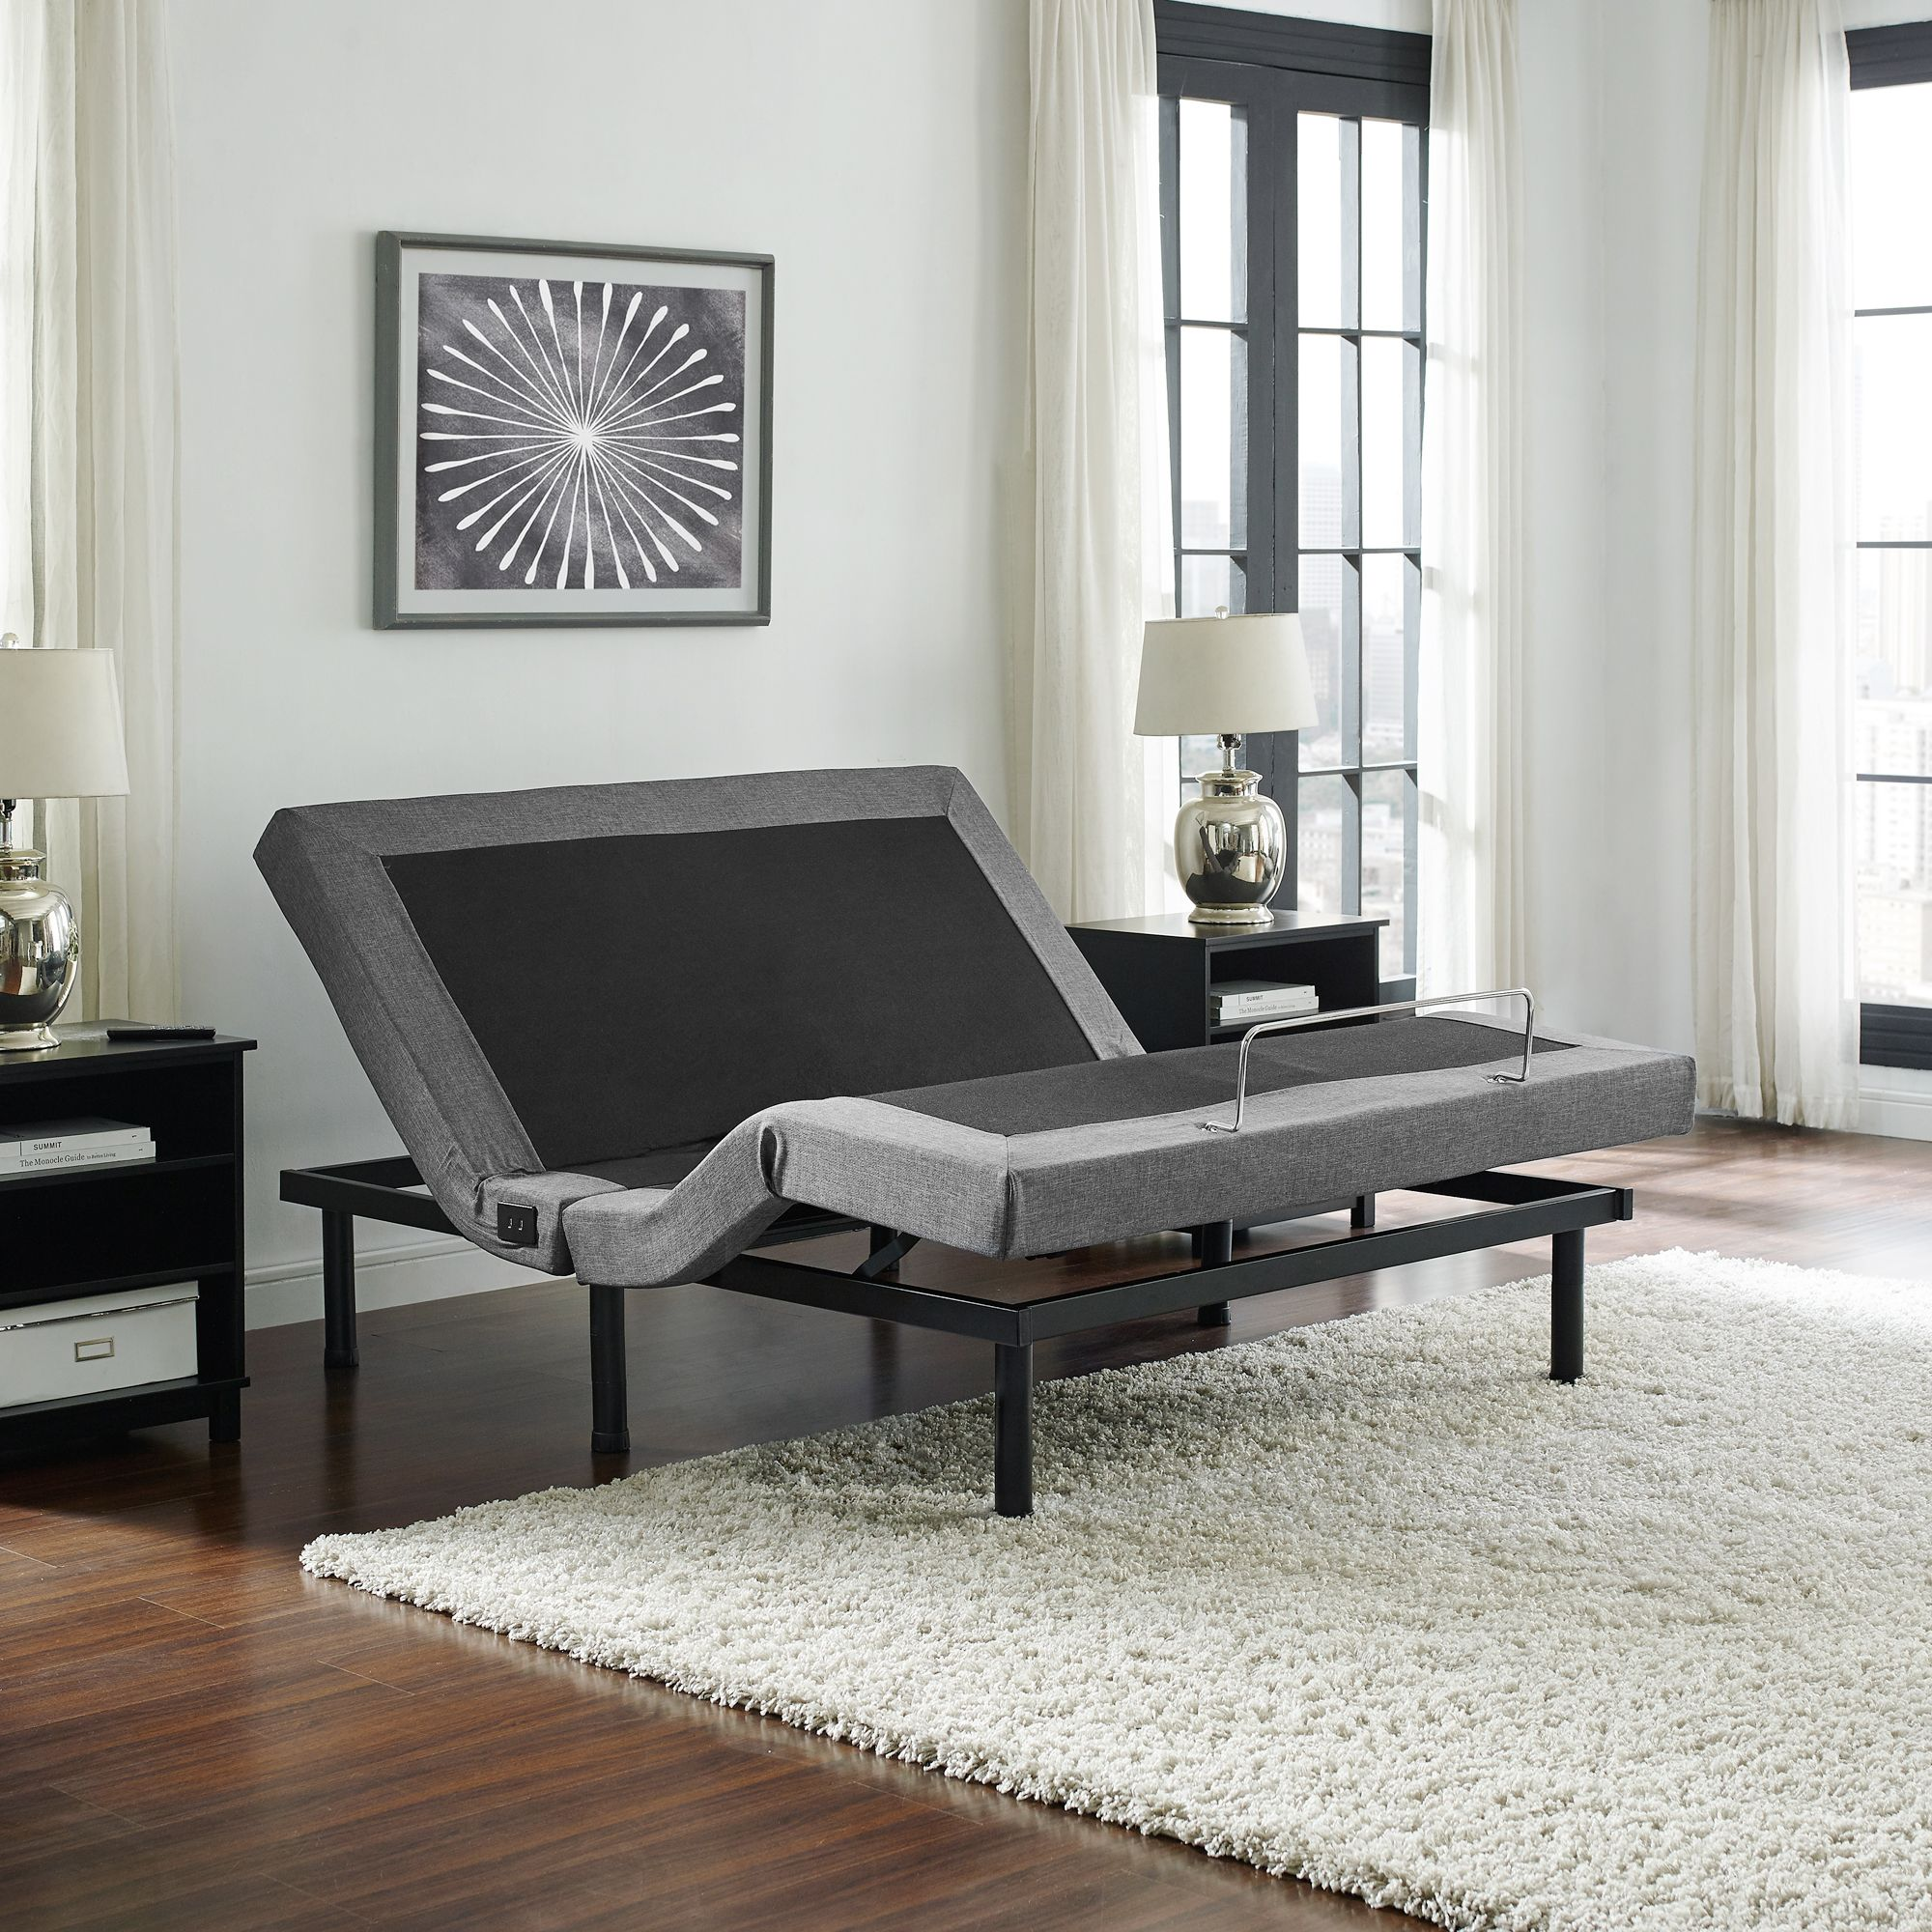 Home Adjustable bed base, Adjustable beds, Bed base